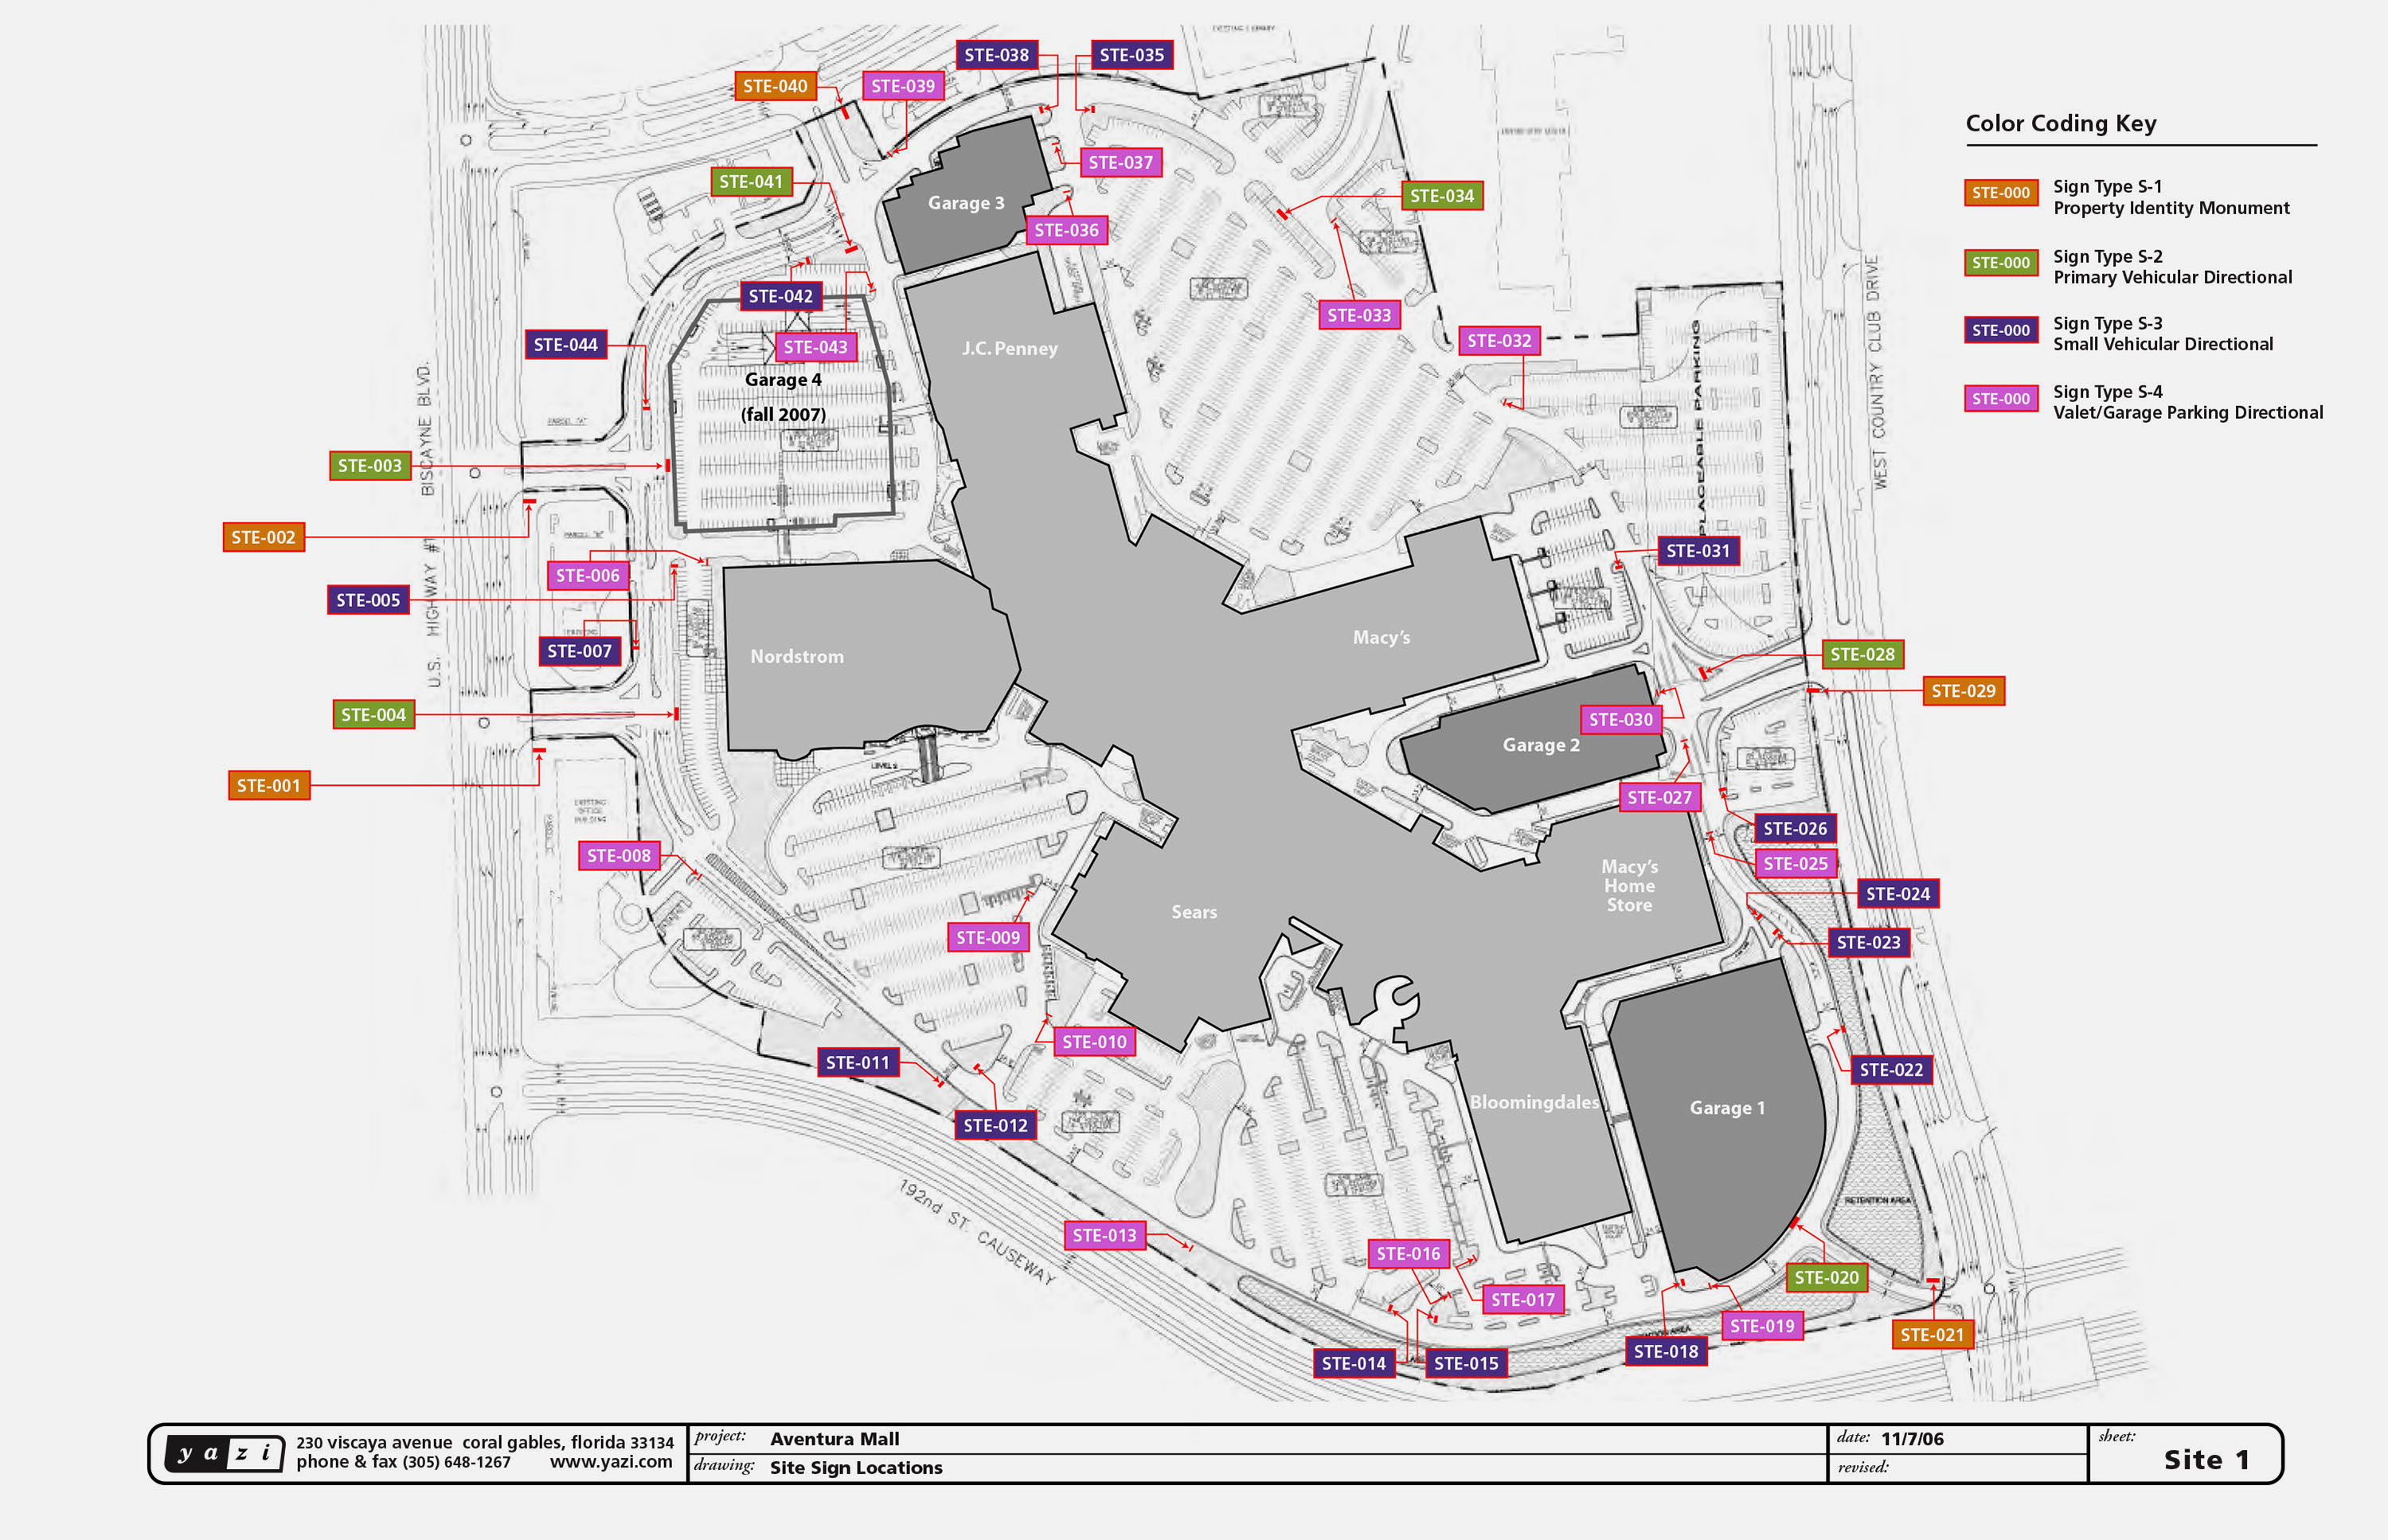 YaziAventura Mall - Florida mall map